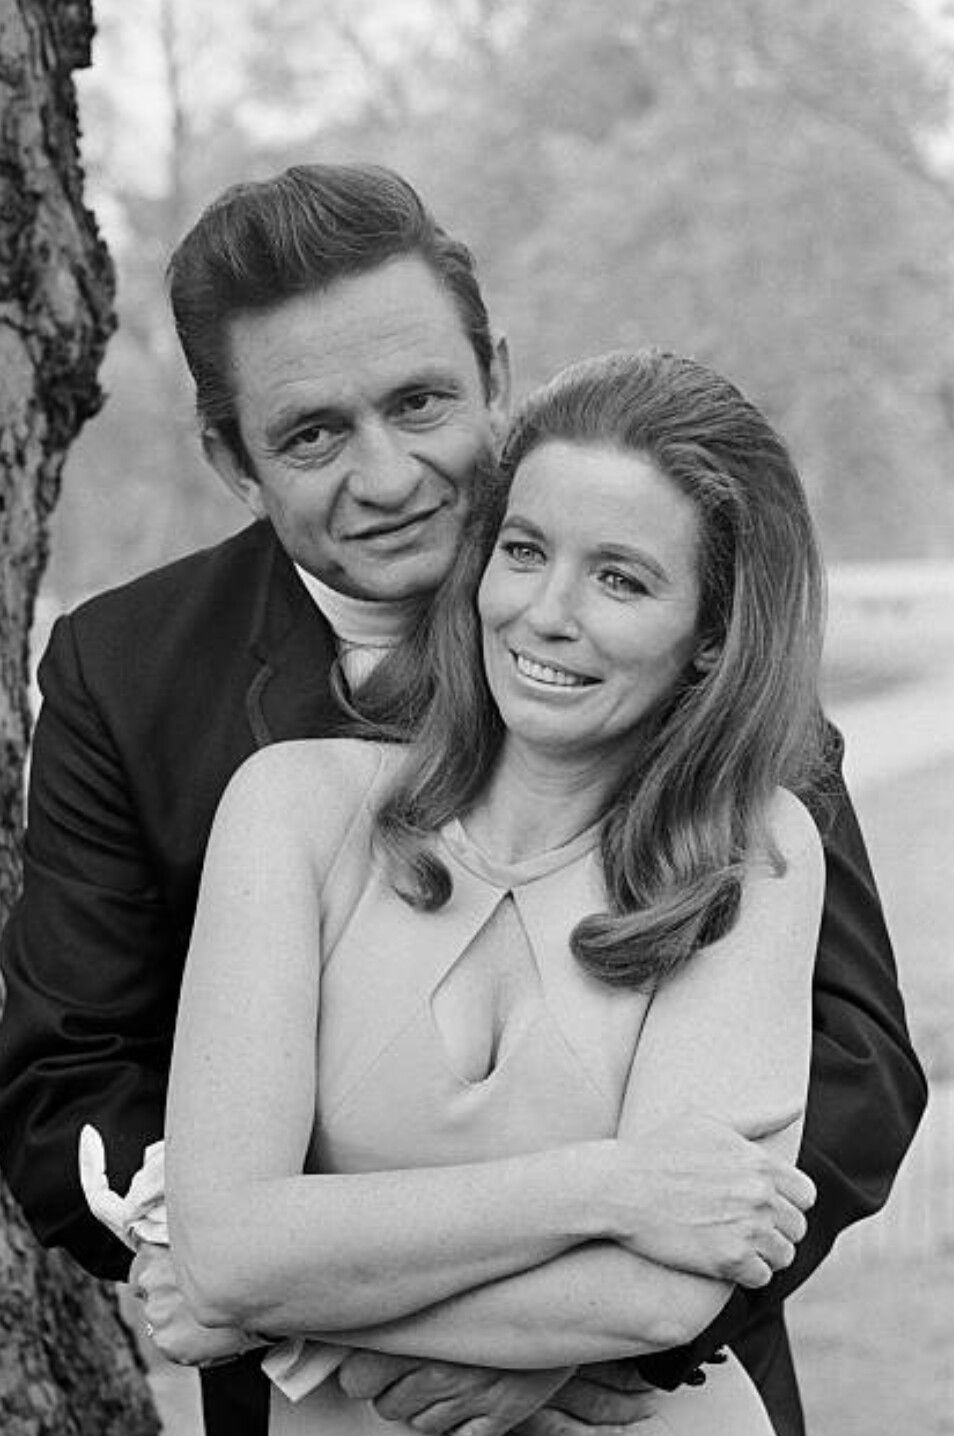 Johnny Cash Pool Song Johnny Cash June Carter Cash Opry Members In 2019 Johnny